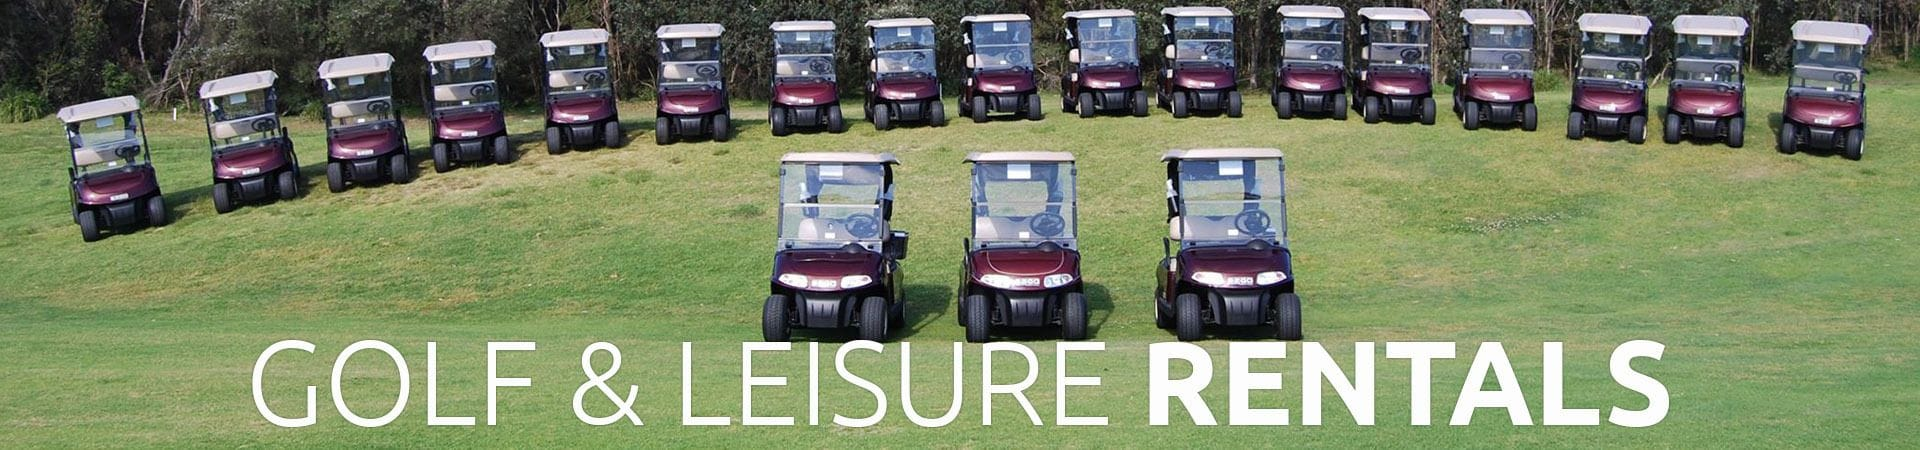 Golf and Leisure Vehicle Rentals | Golf Car World